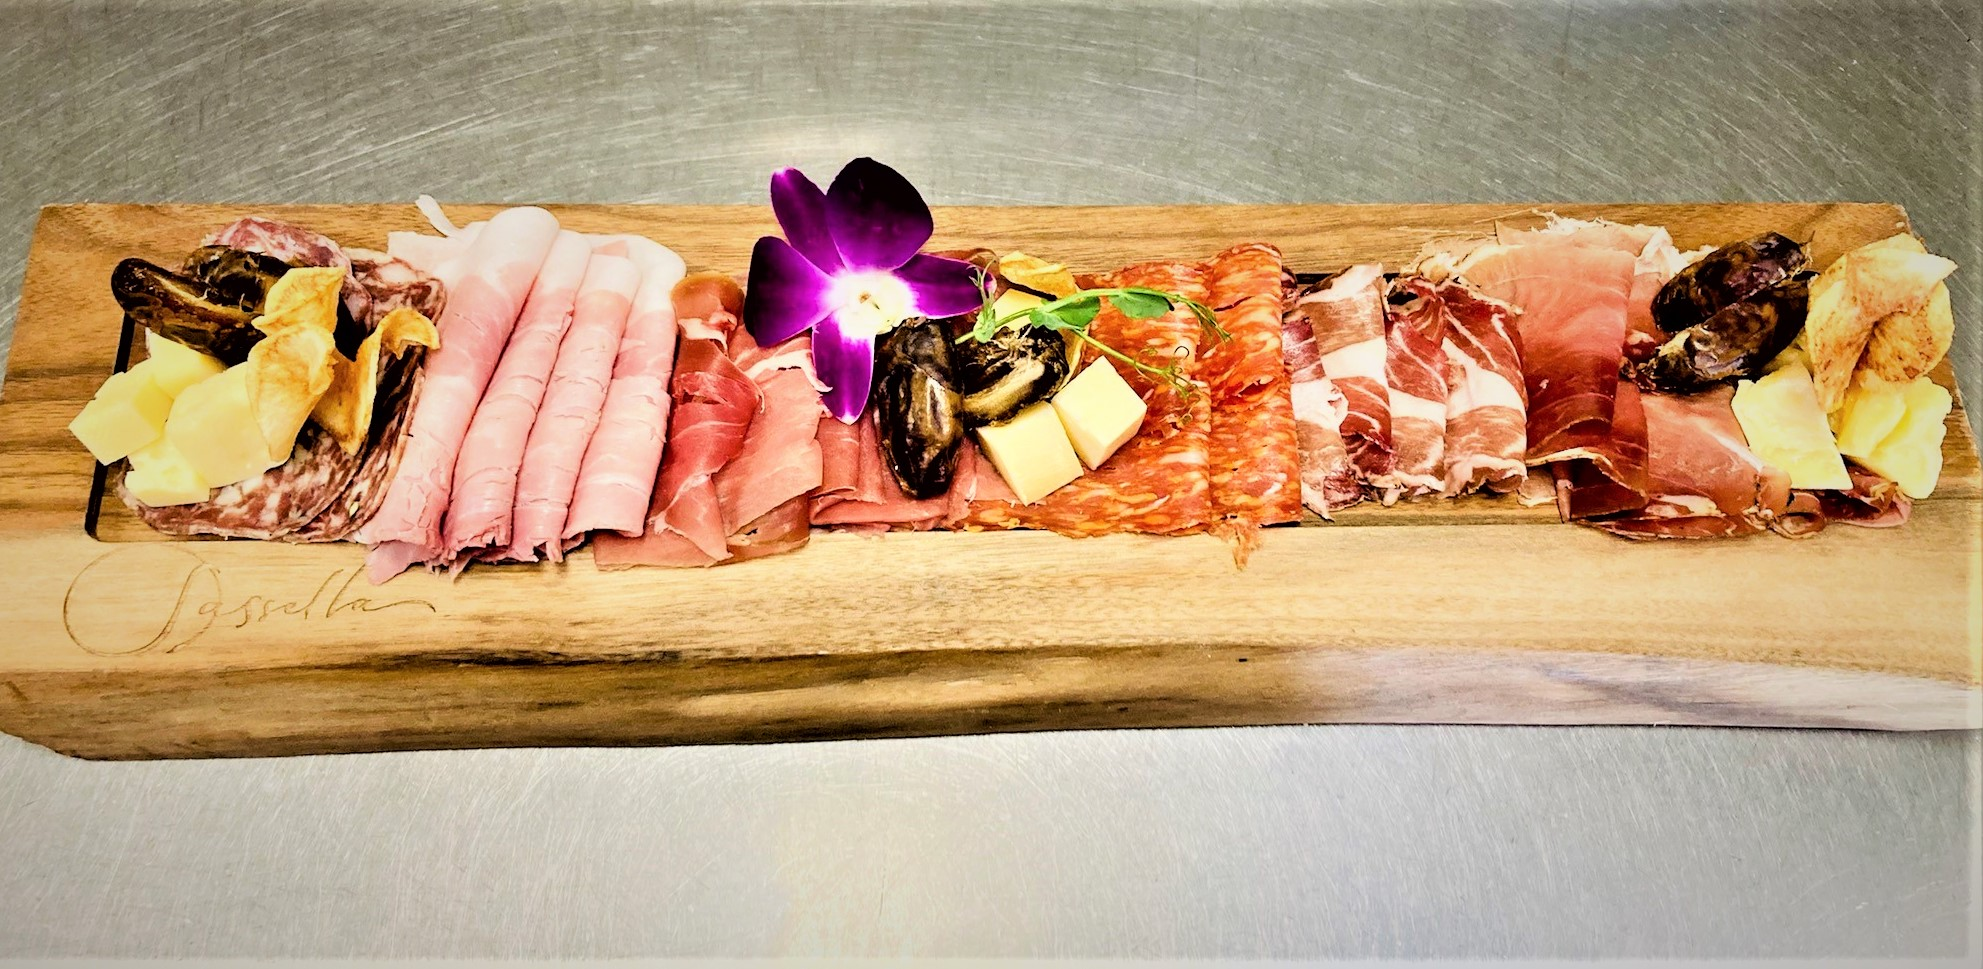 LET US ASSEMBLE YOUR PERFECT ANTIPASTO PLATTER FOR YOUR NEXT GET TOGETHER!